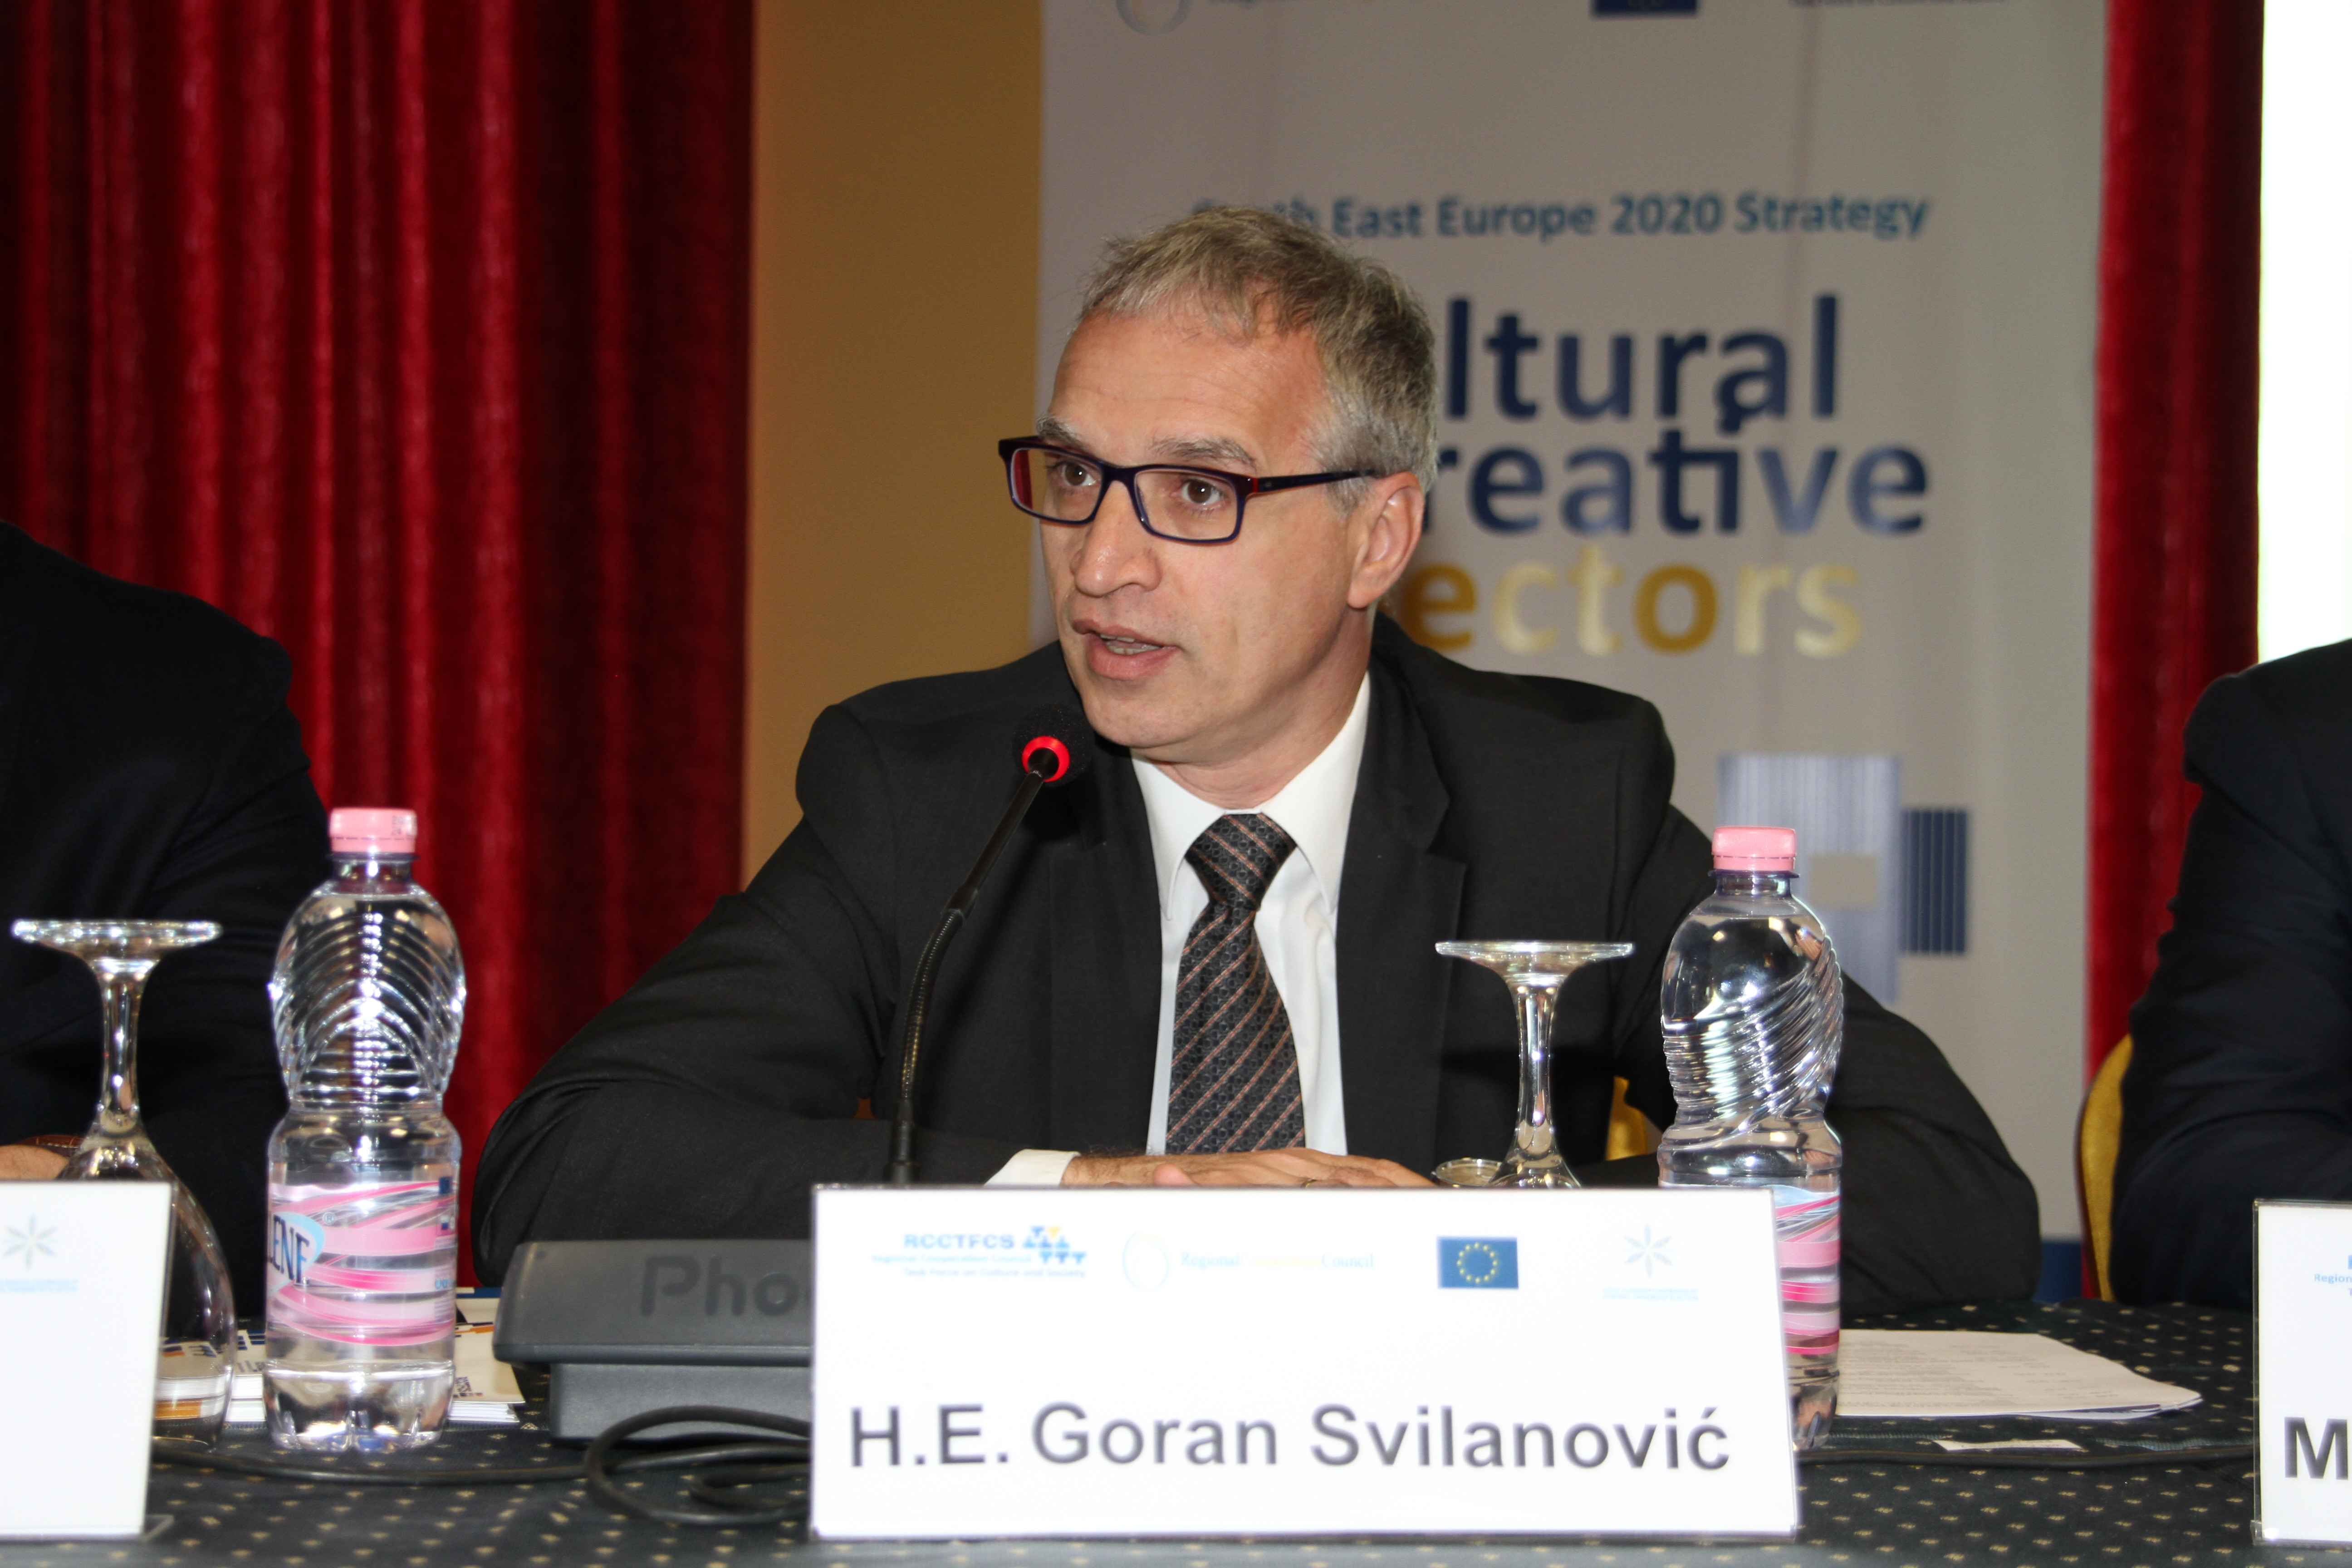 RCC Secretary General, Goran Svilanović, at the eleventh meeting of the RCC Task Force on Culture and Society, in Durres, Albania, on 29 April 2015. (Photo RCC/Mimika Loshi)